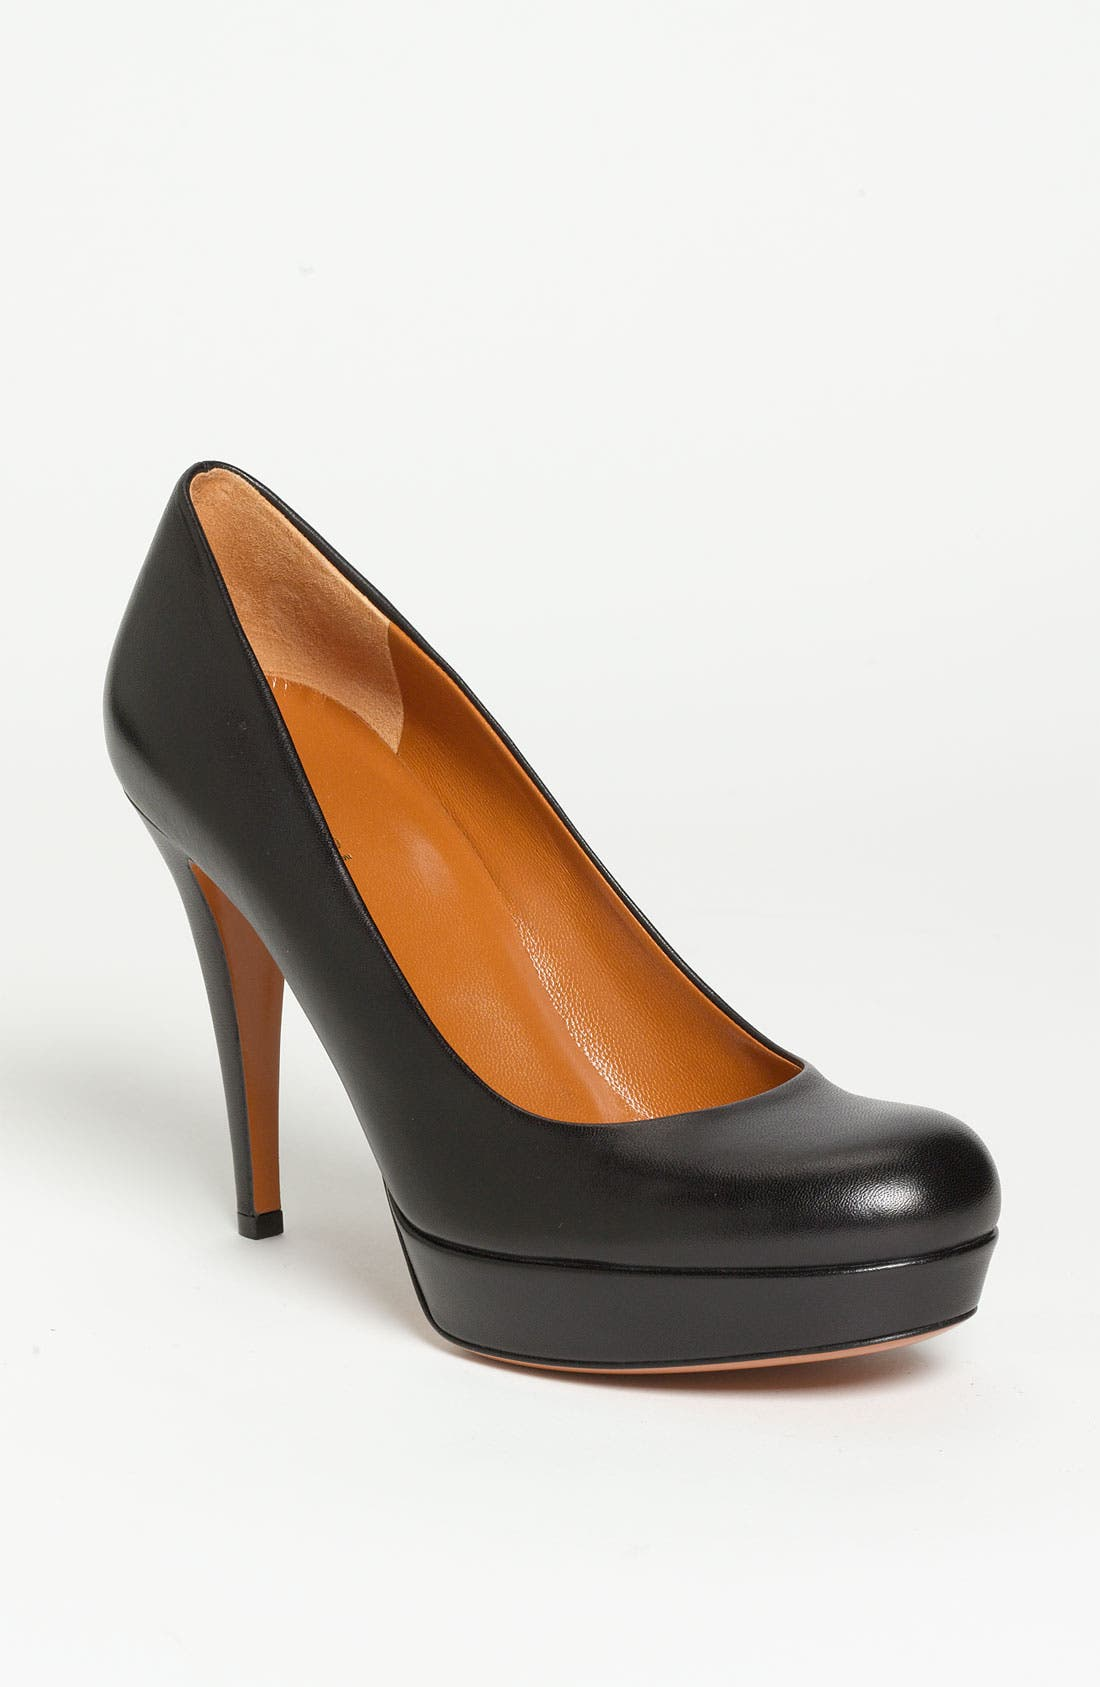 Main Image - Gucci 'Betty' Pump